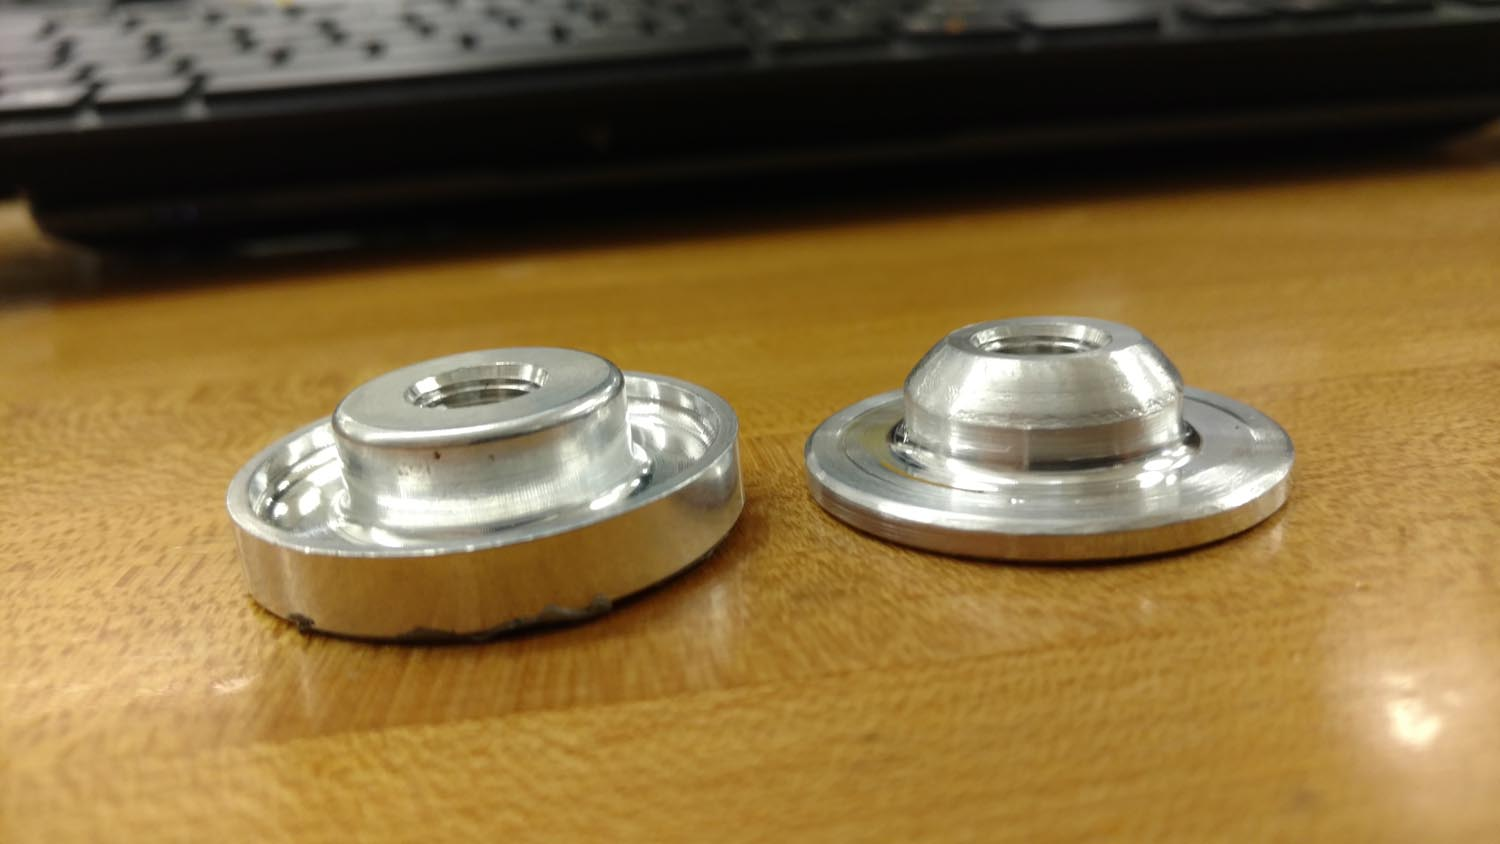 Welding flange on the right for tank vent has been modified for use with rivets.